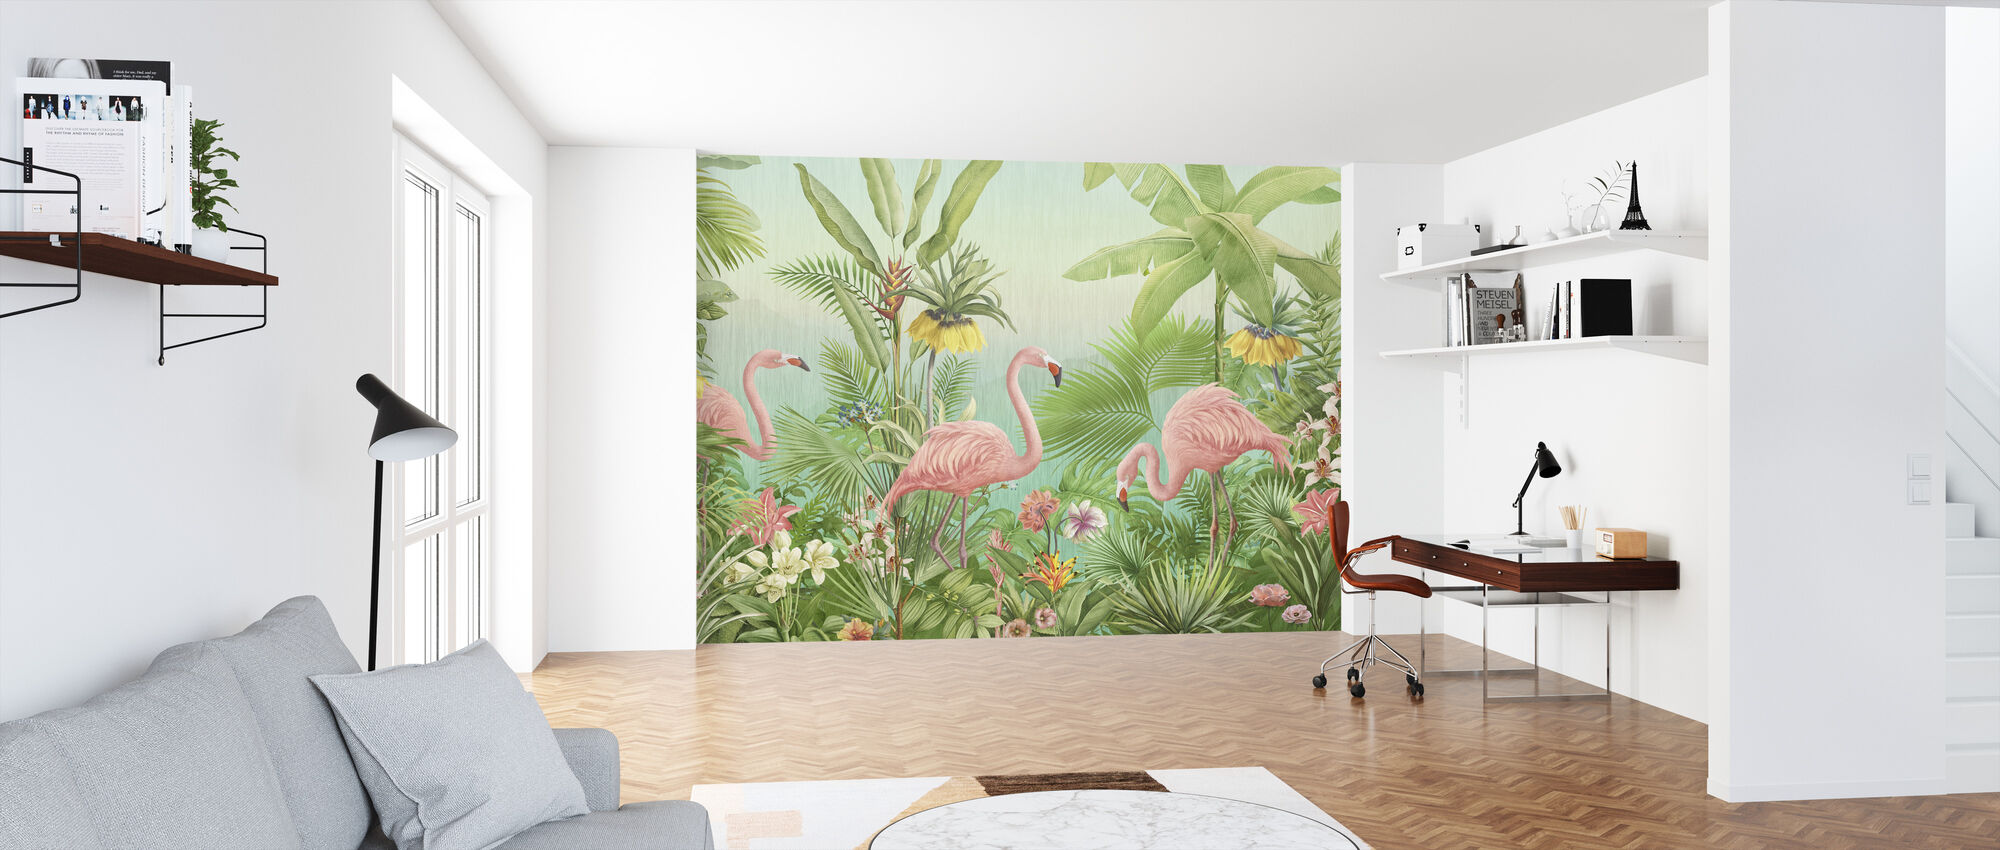 Flamingo Eden - Wallpaper - Office